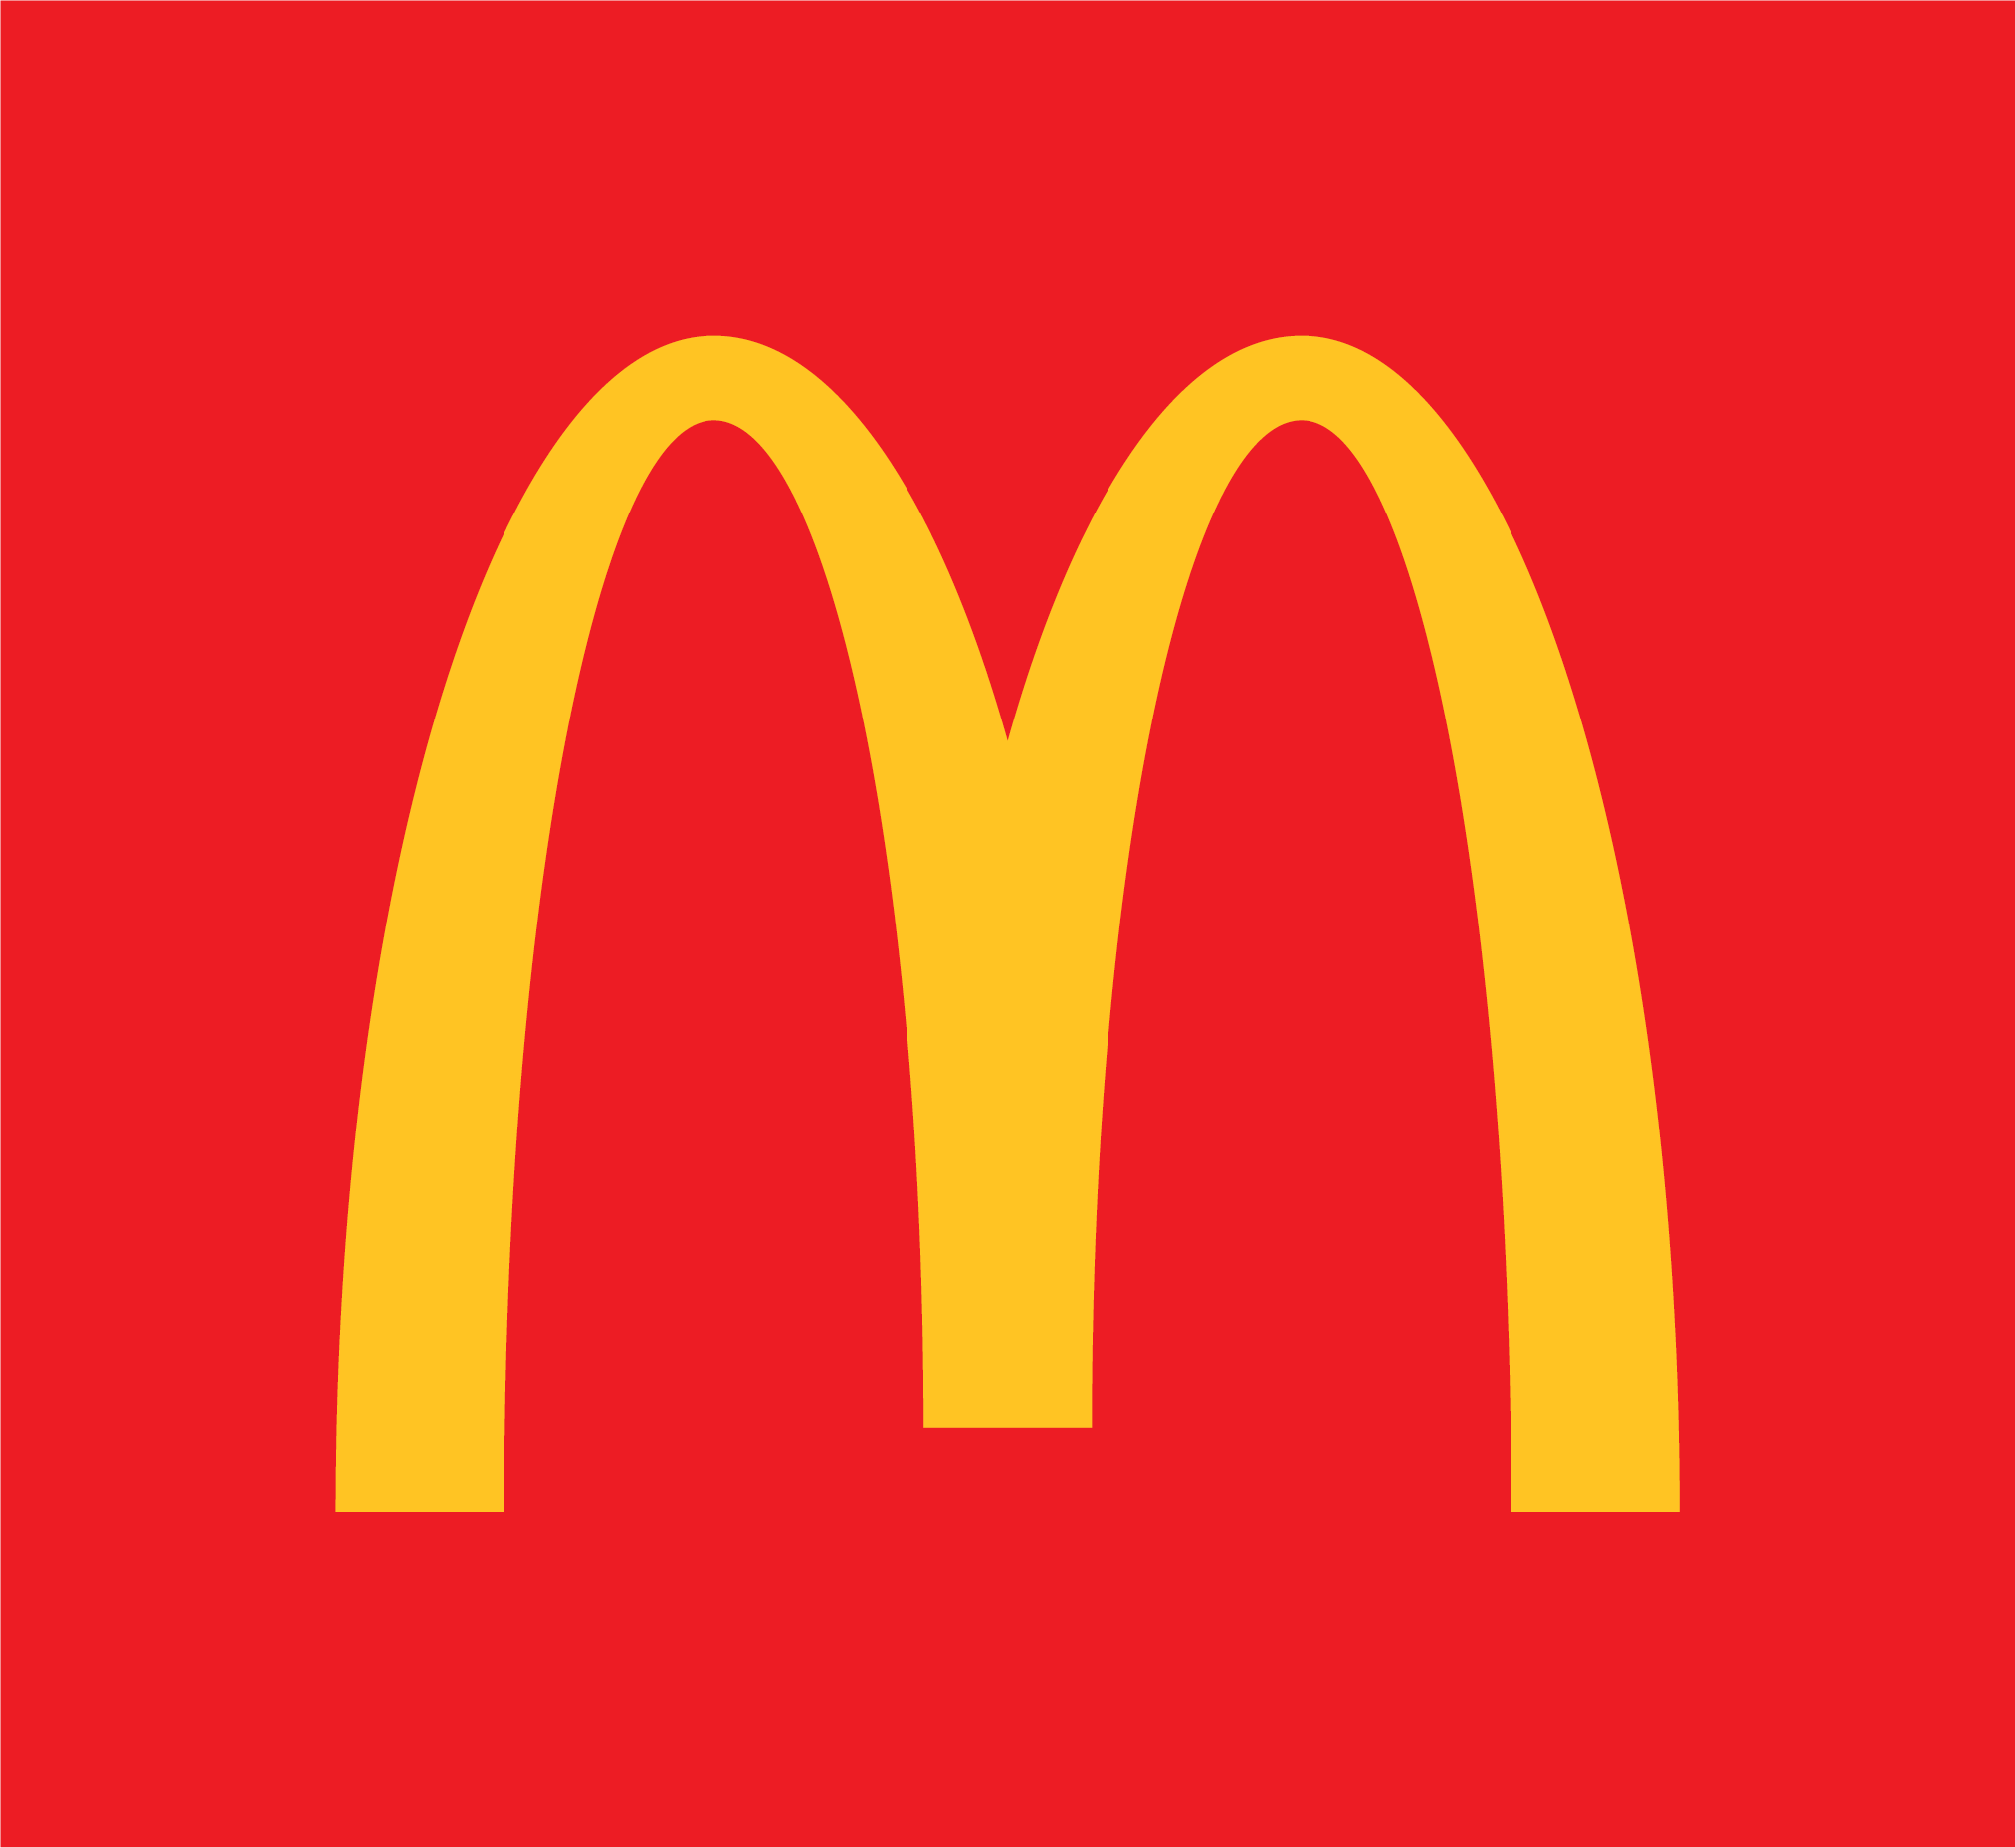 McDonald's Enjoy Fast, Effective and Accurate Results